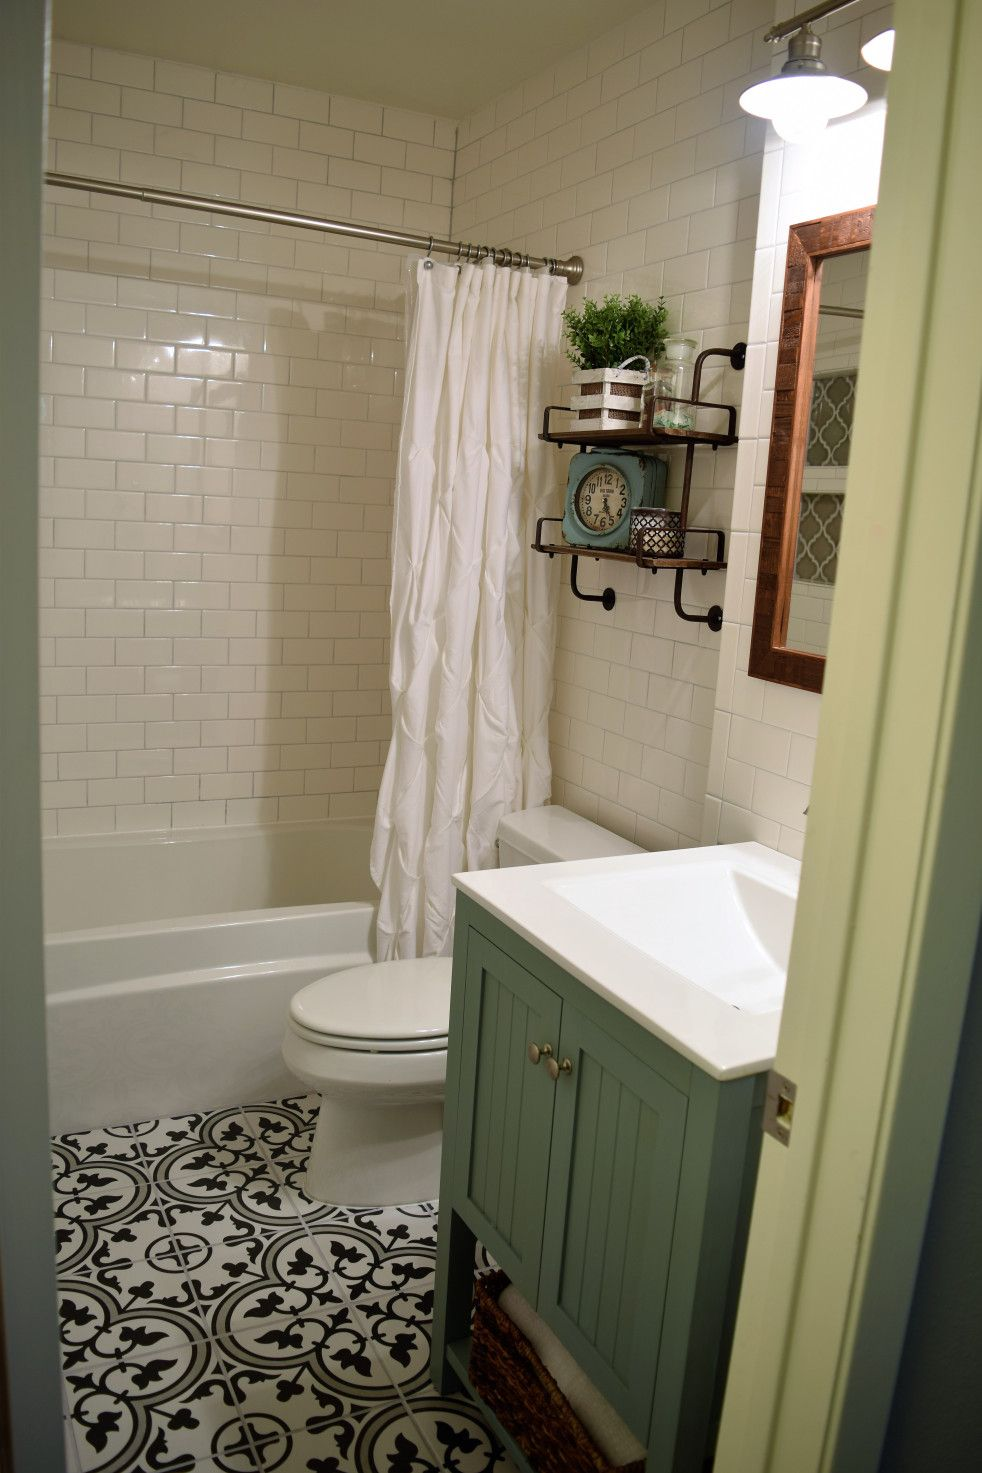 Economical Bathroom Remodel Black And White Cement Look Tile At A Fraction Of The Cost